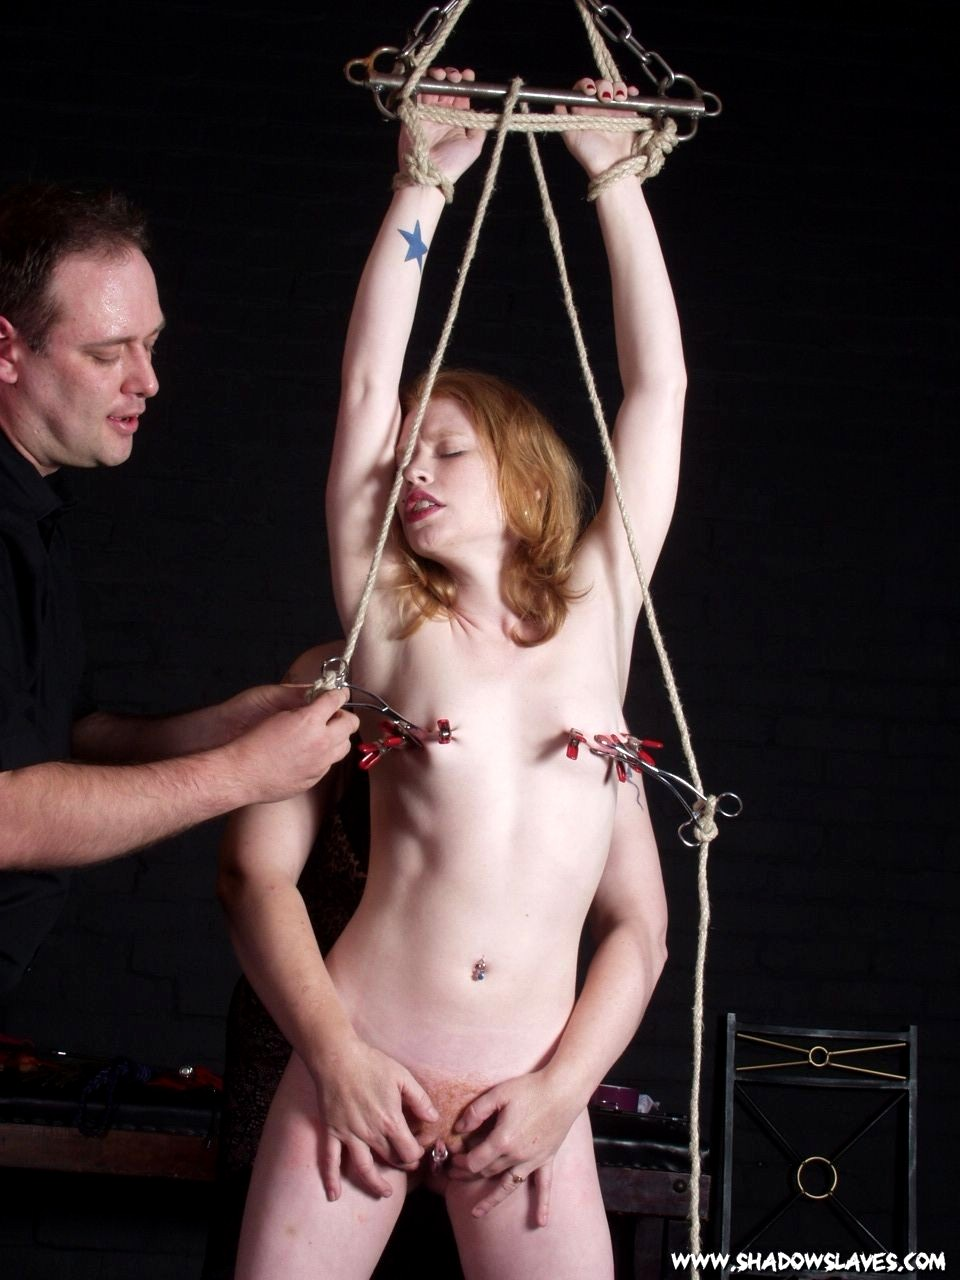 Babe Today Shadow Slaves Madison Young Jay Good Bdsm -1579